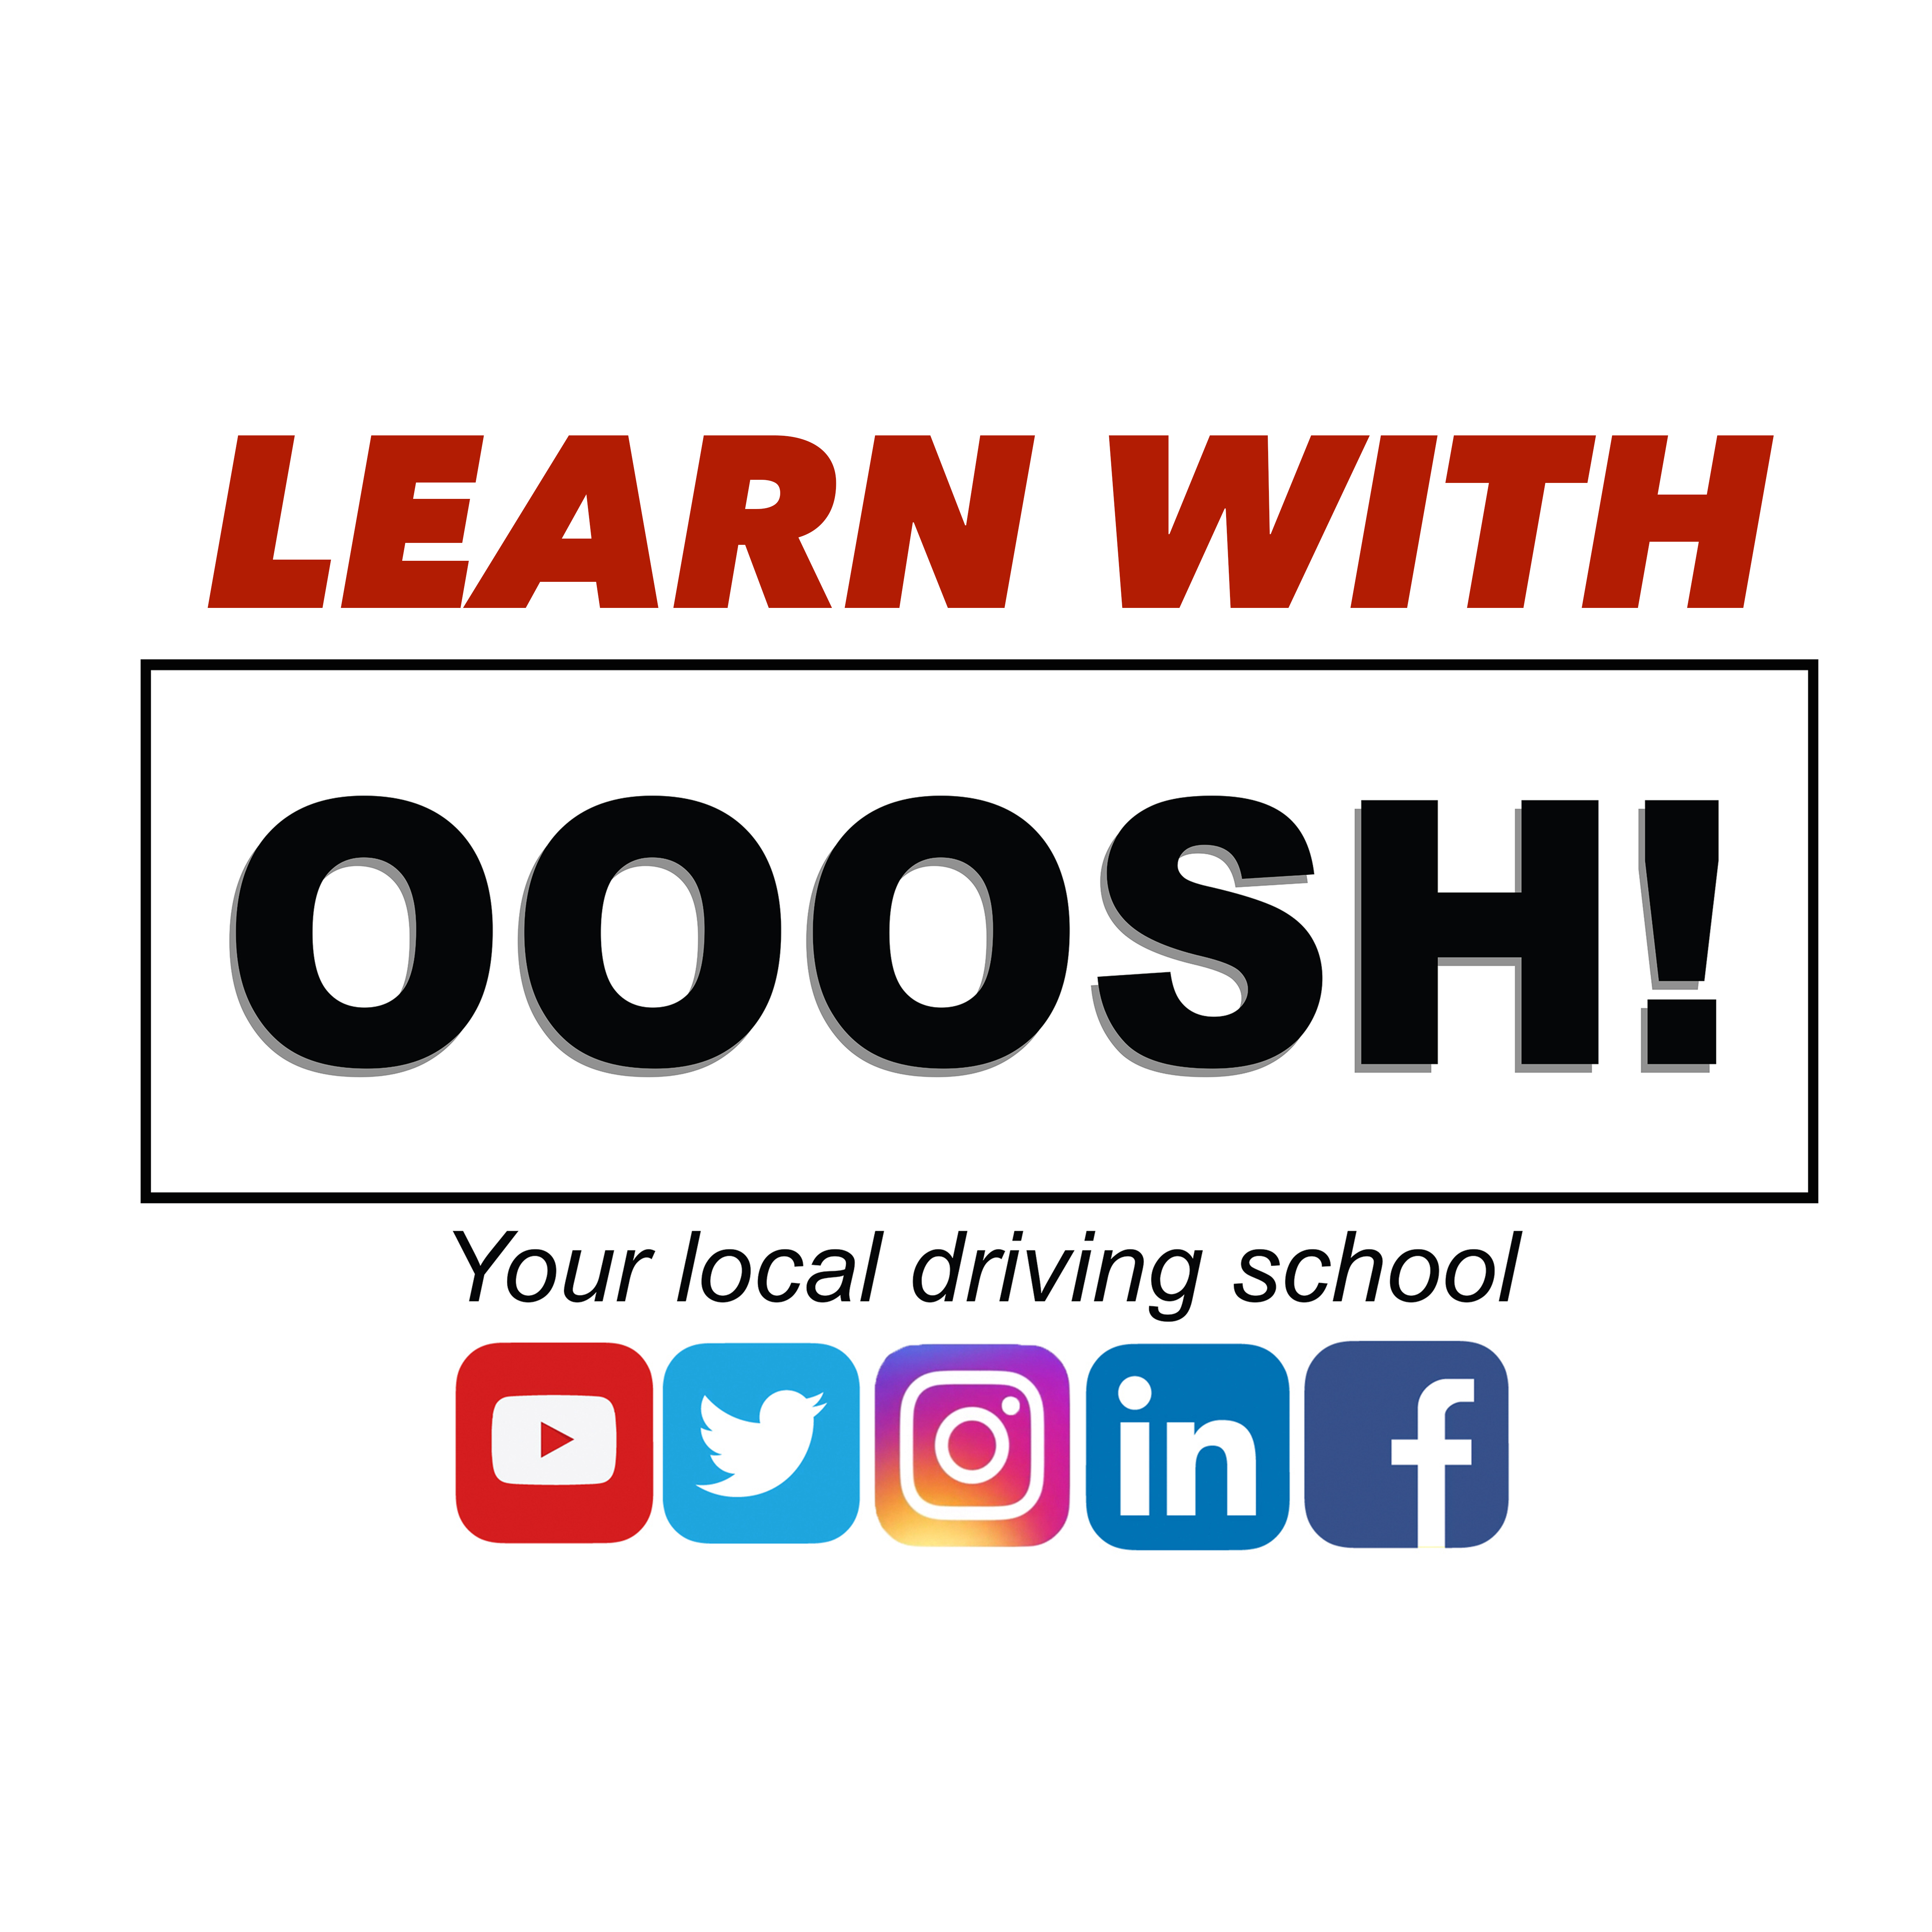 OOOSH! Driving Instructor | Imre | Driving School | Ormskirk L39 4UR | +44 7783 451917